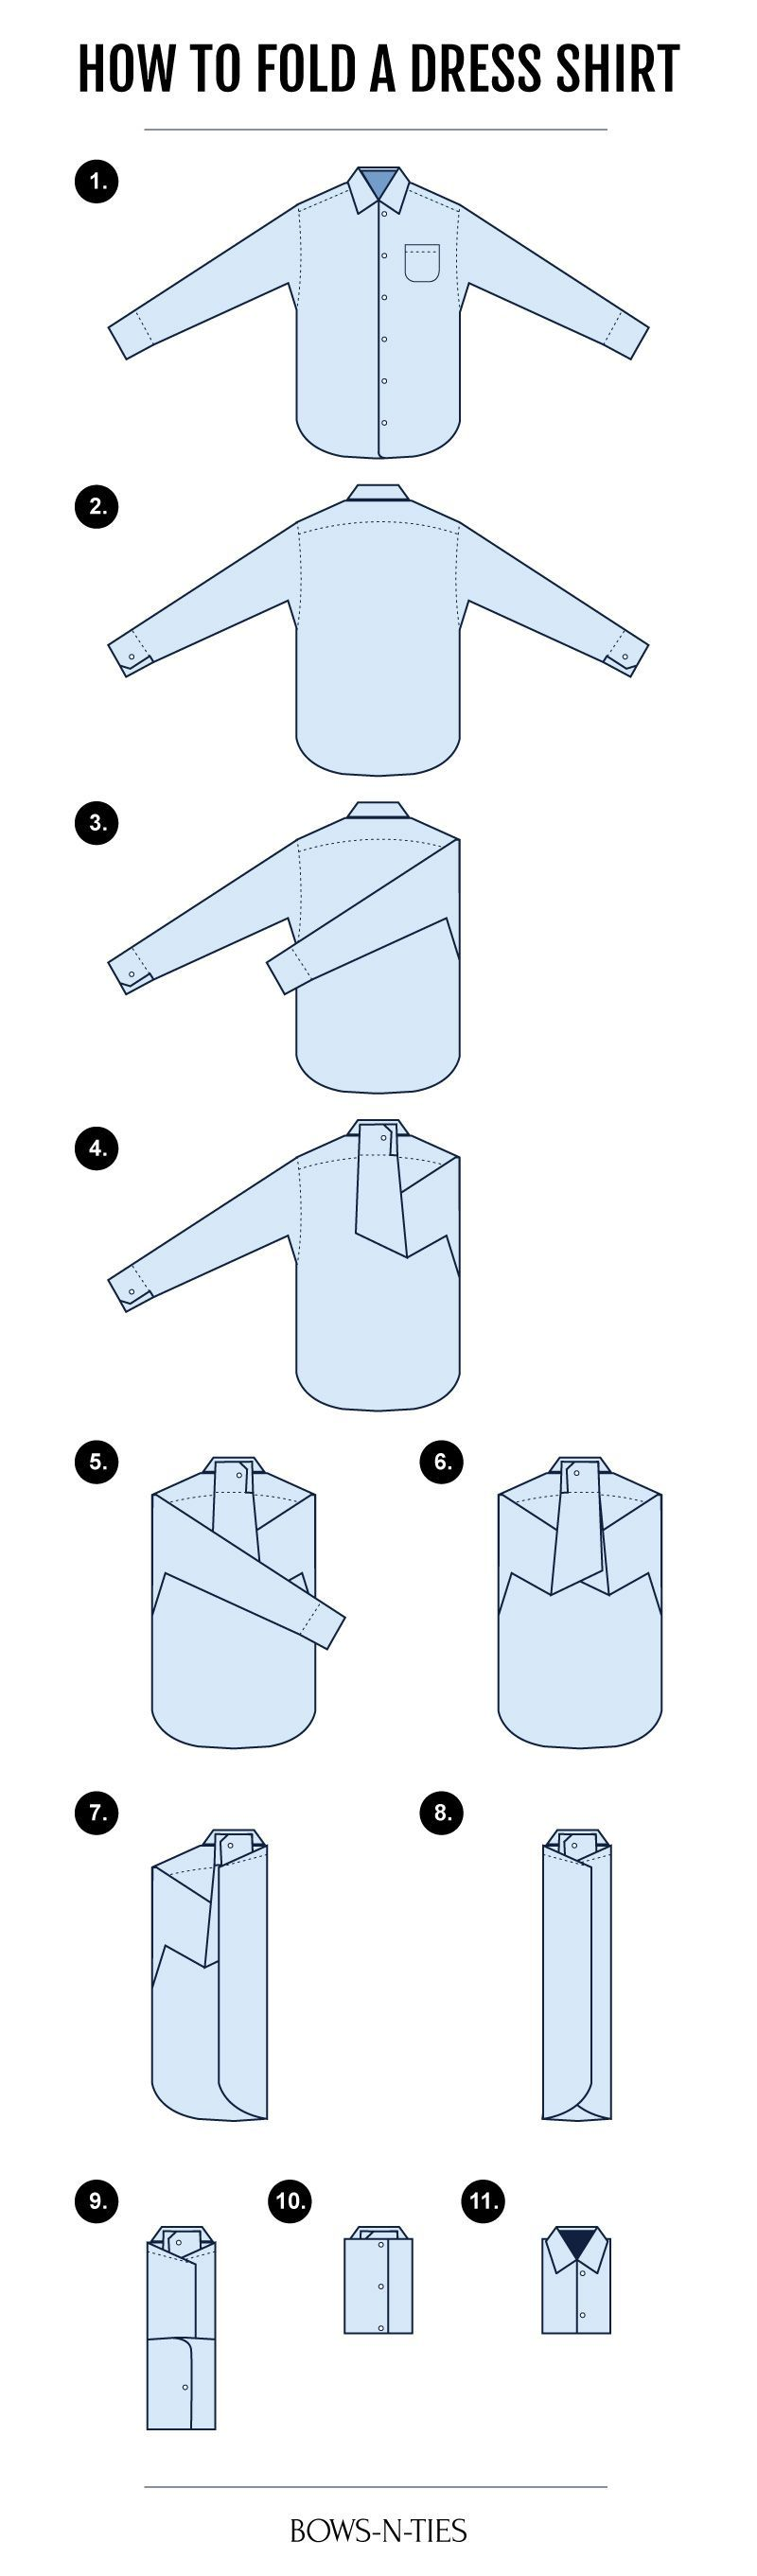 How To Fold Your Suit and Shirt For A Business Trip